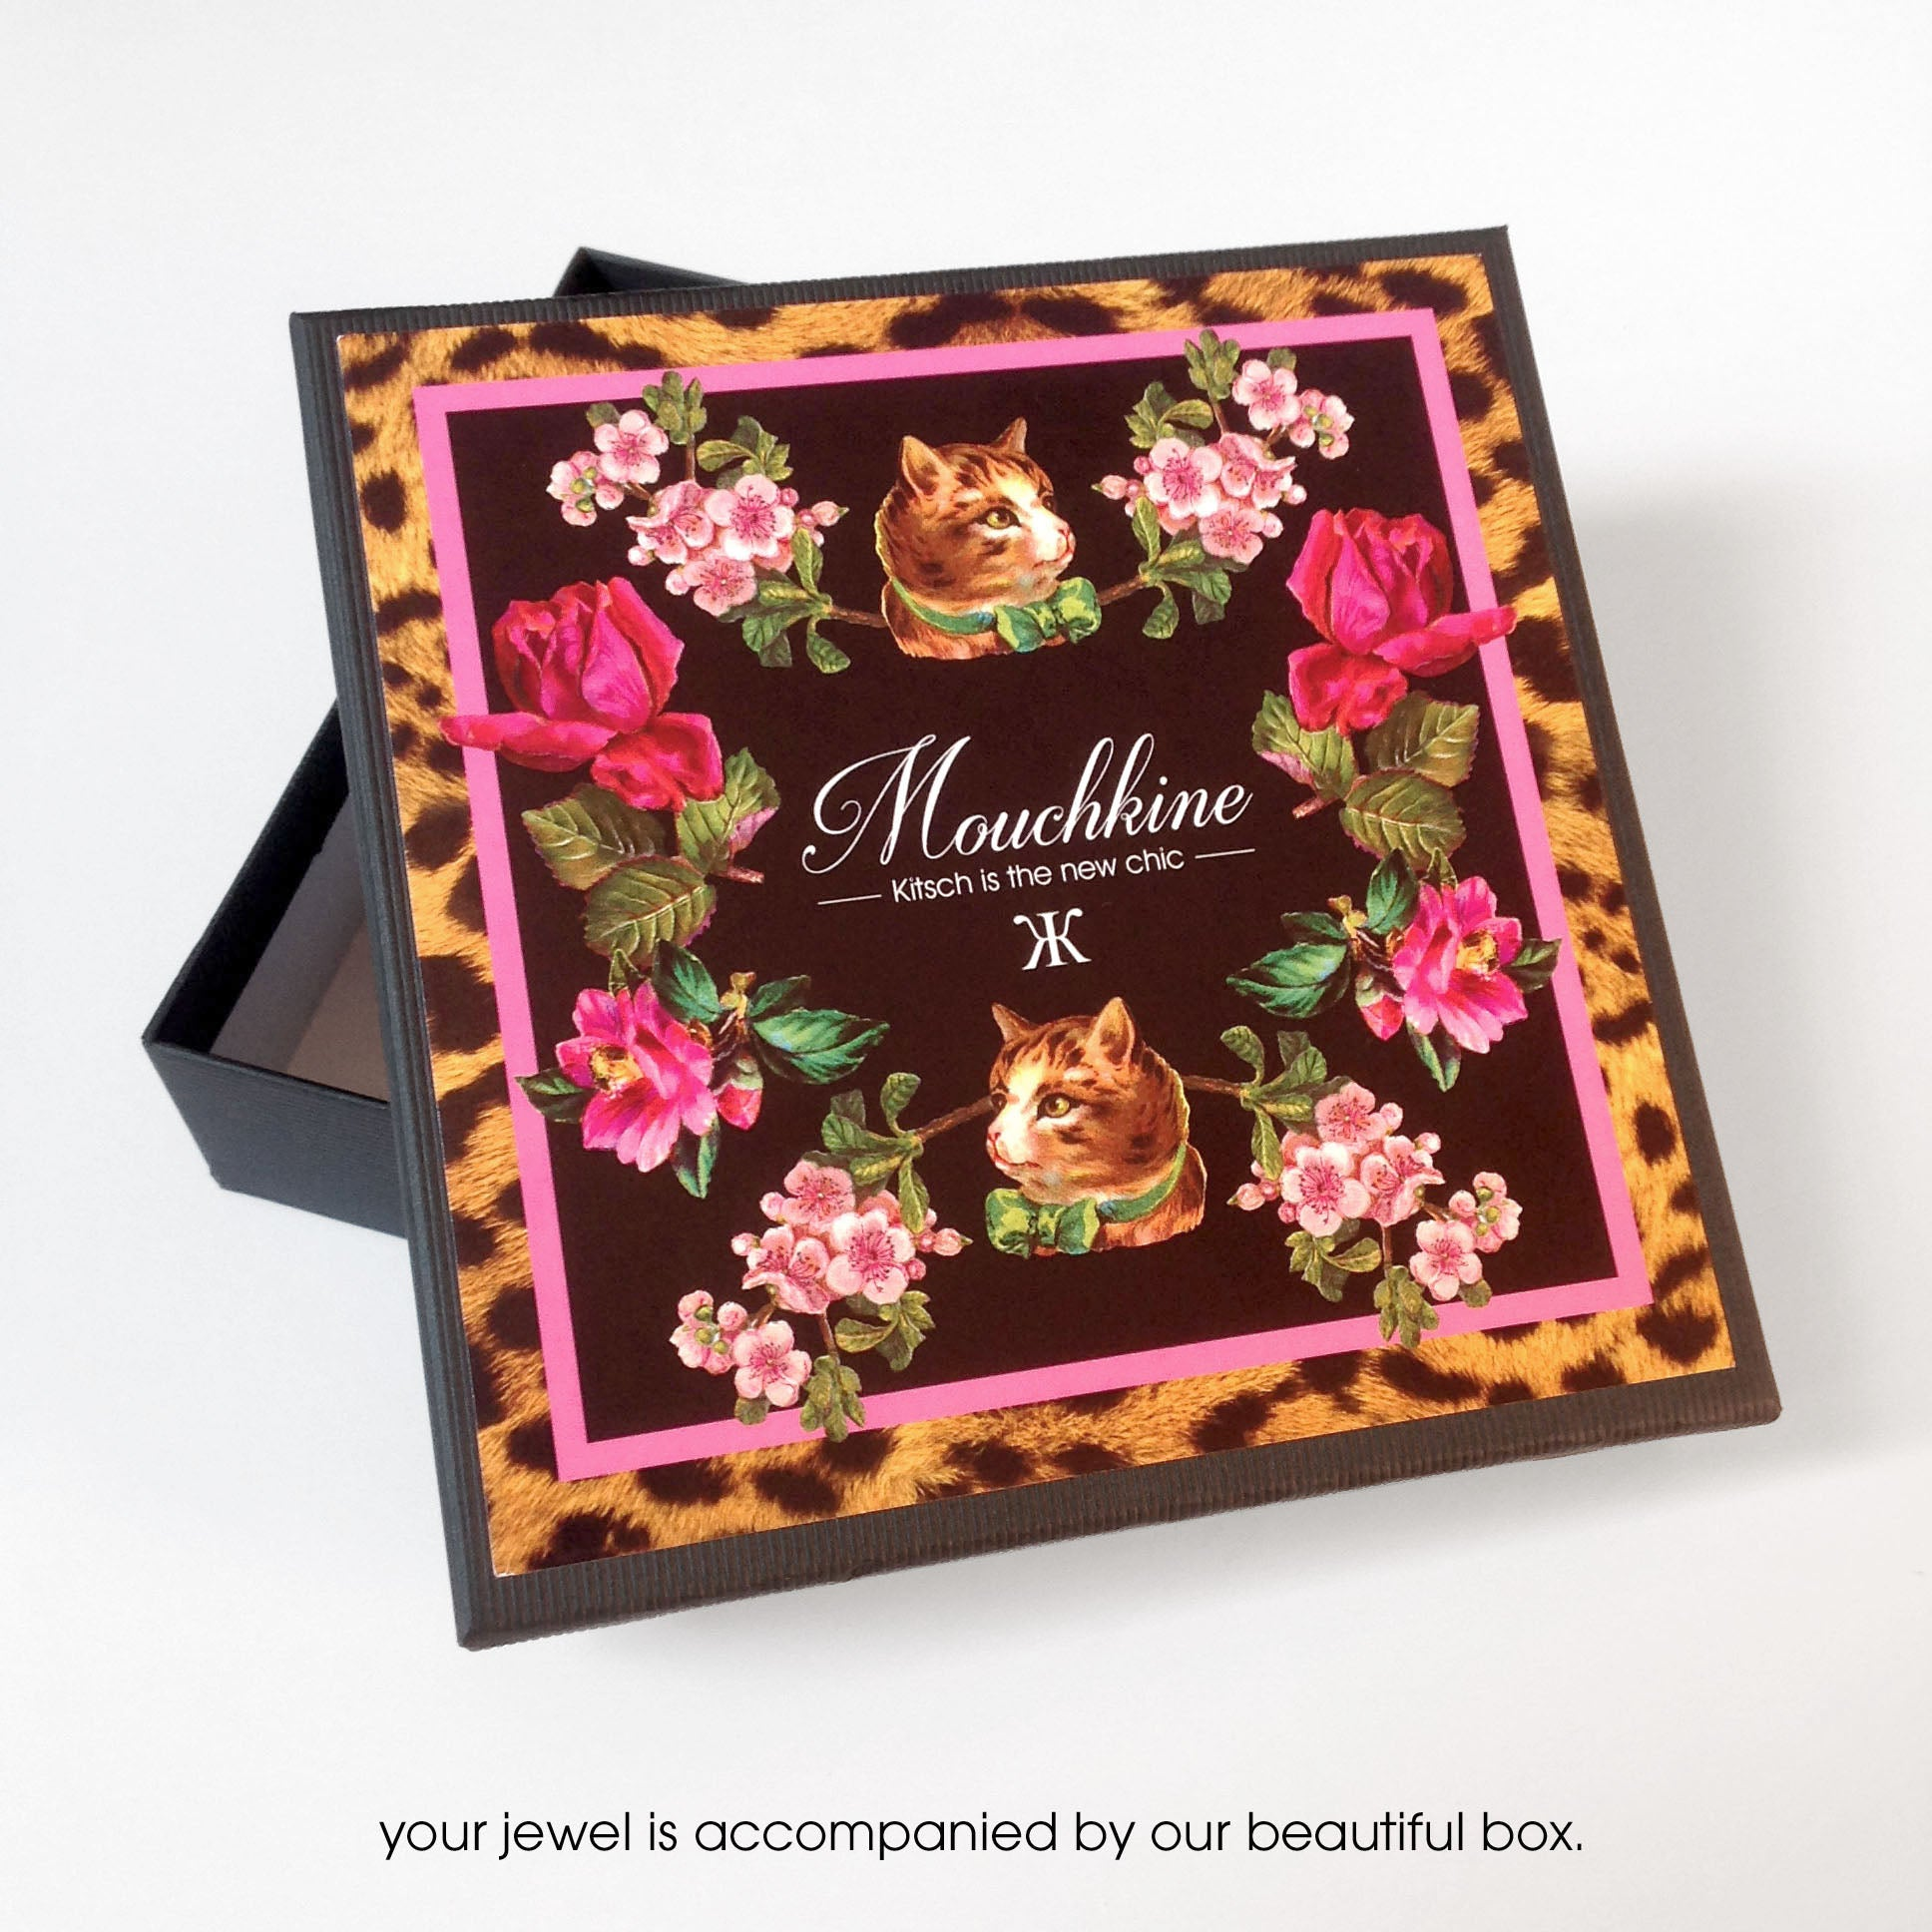 mouchkine jewelry elegant luxury packaging made in Paris